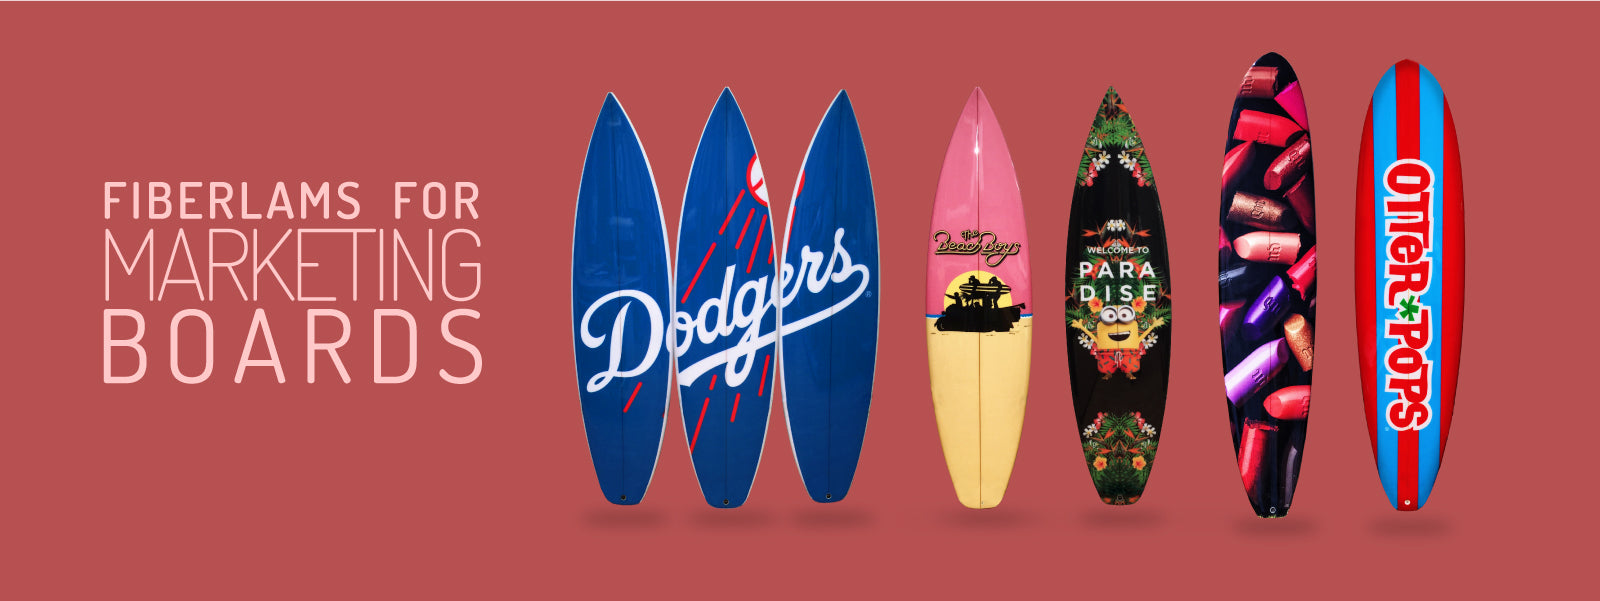 BoardLams + Your Brand - Custom Surfboards